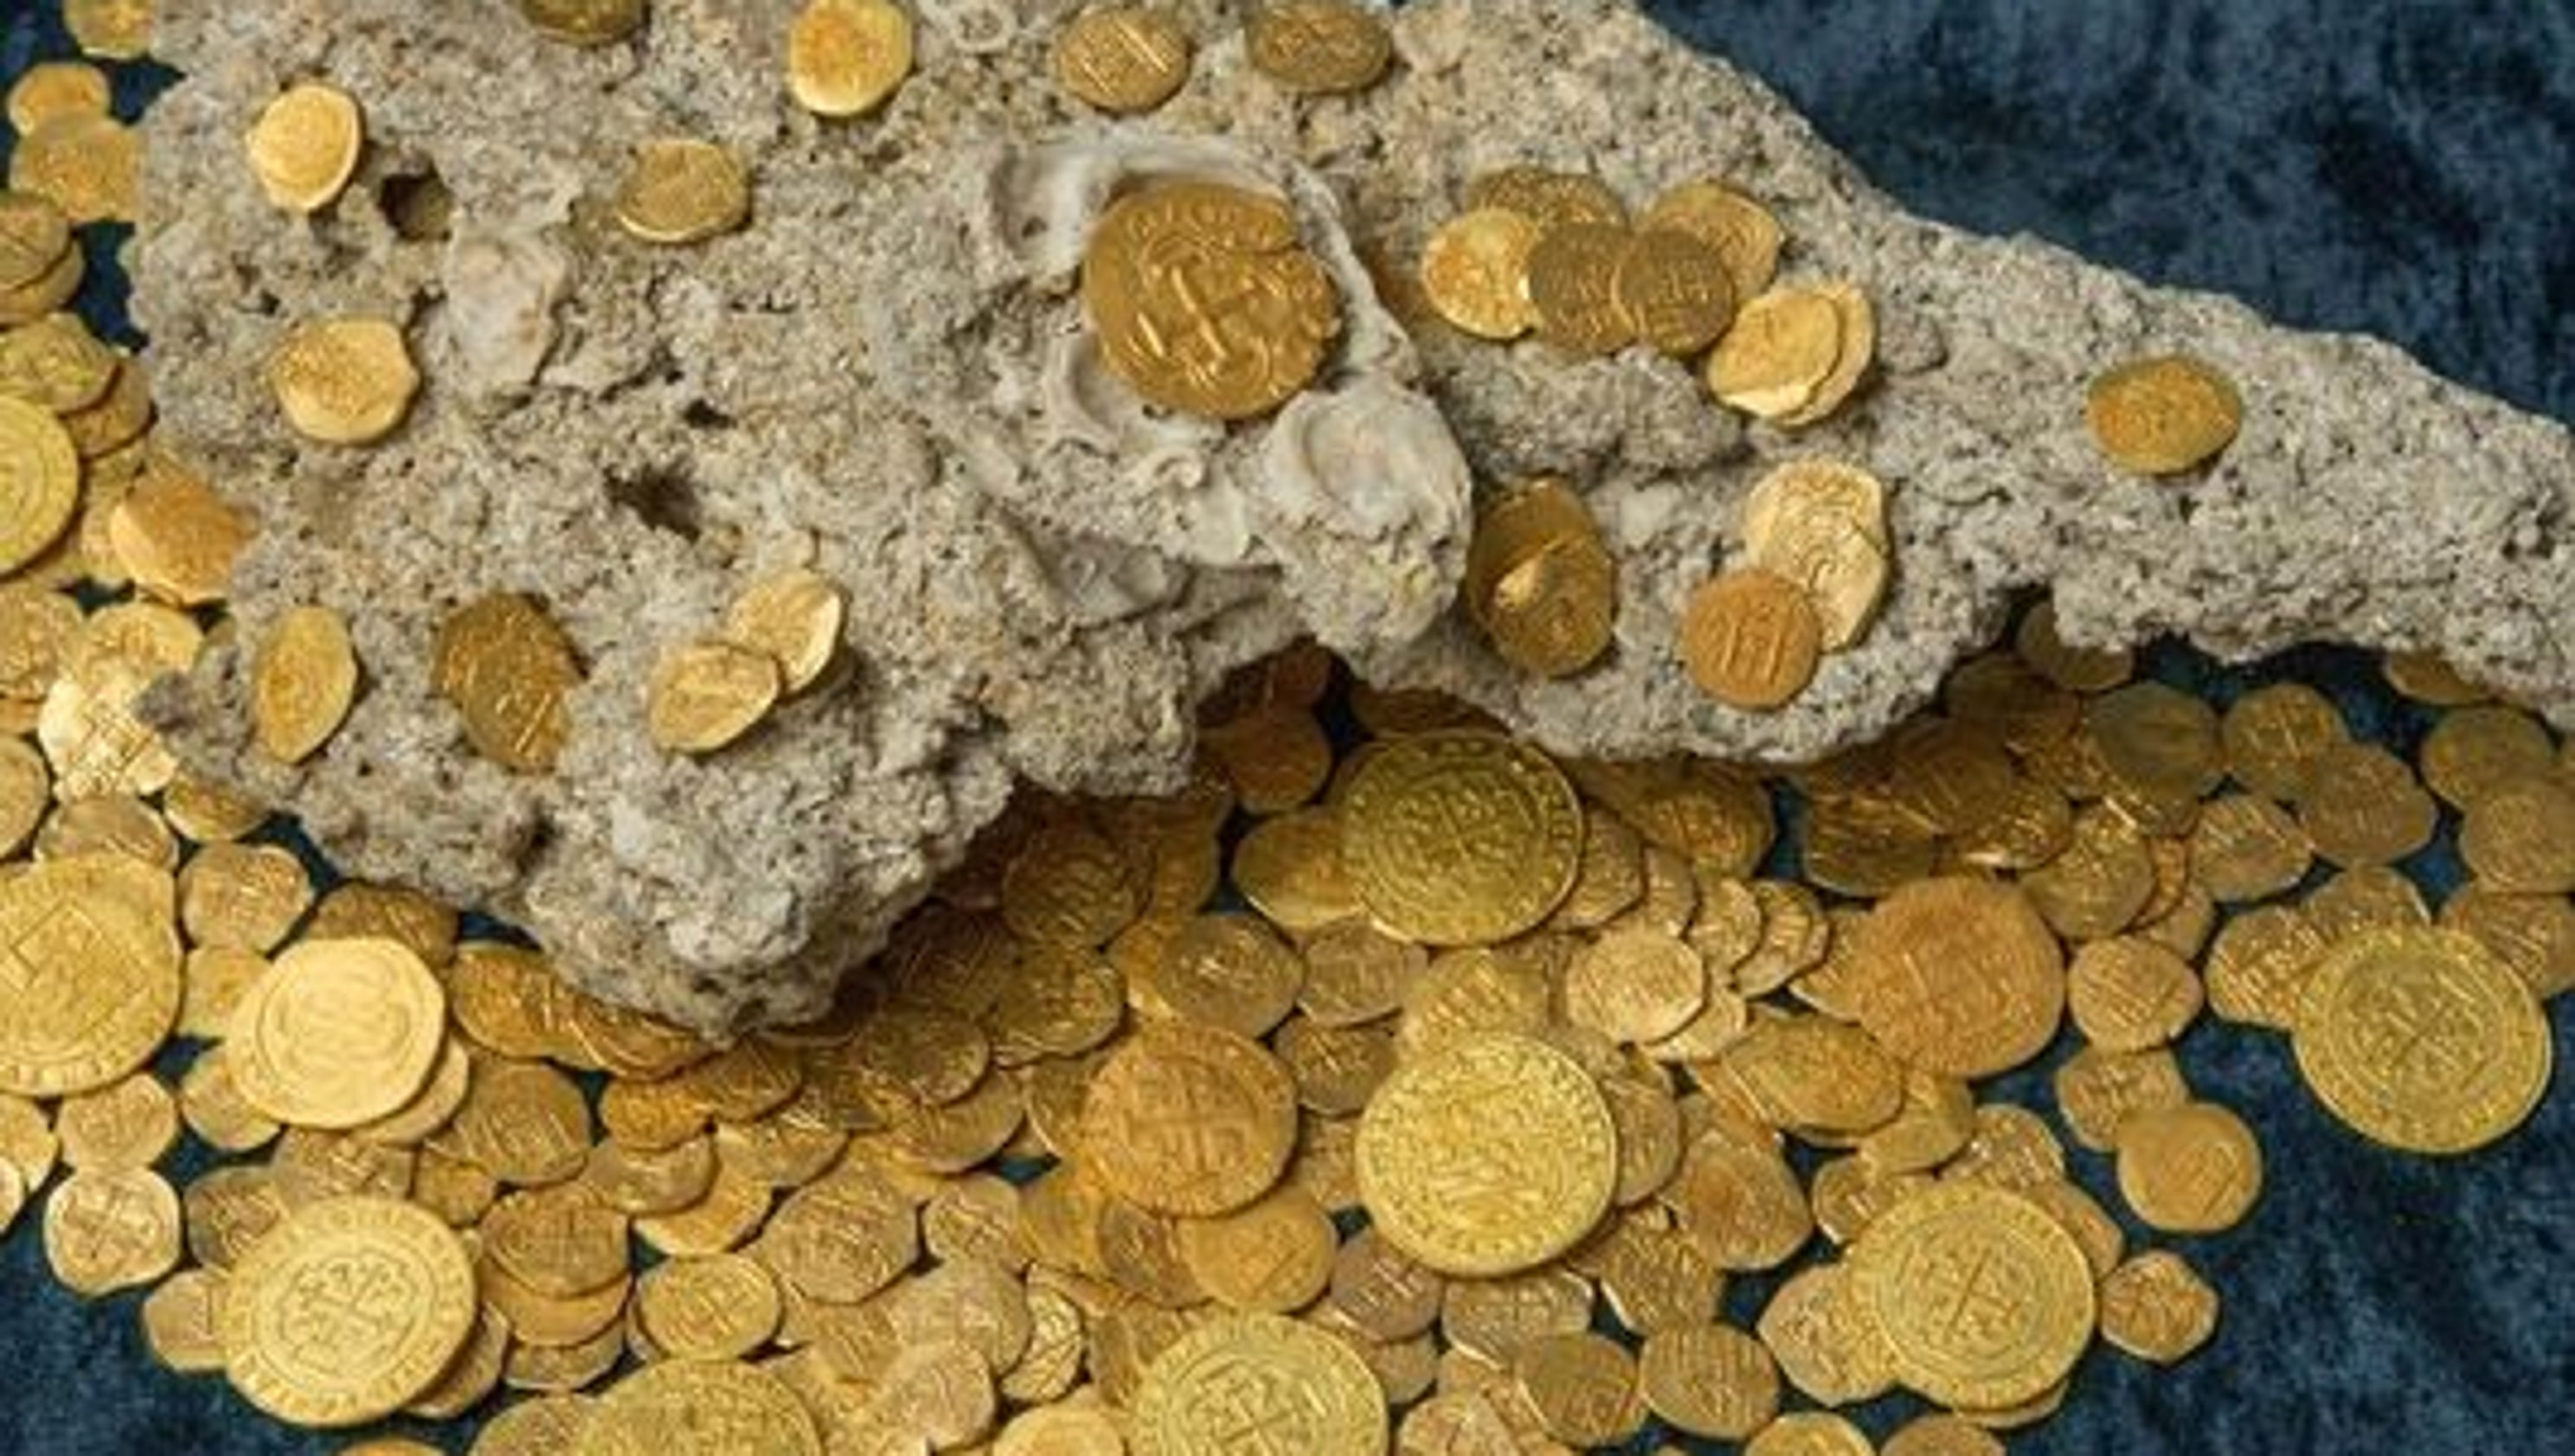 florida divers find over 300 coins worth  4 5m